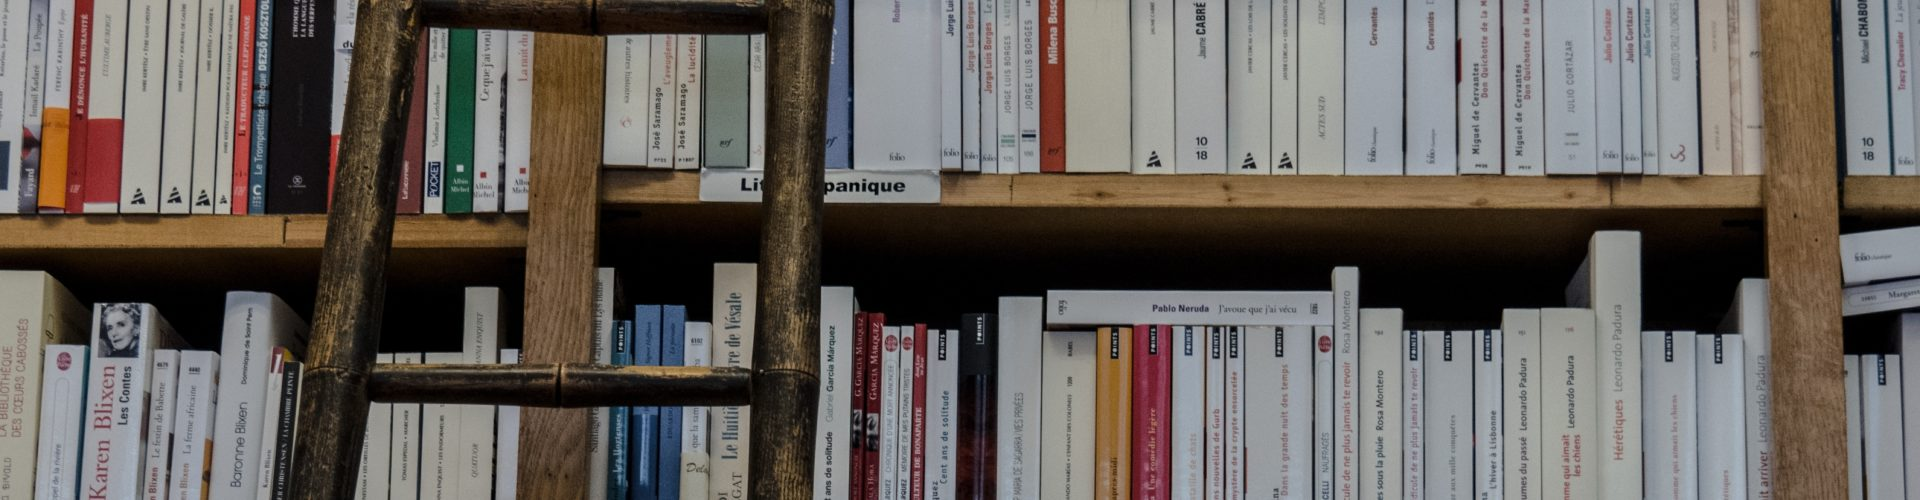 a close up of a book shelf filled with books